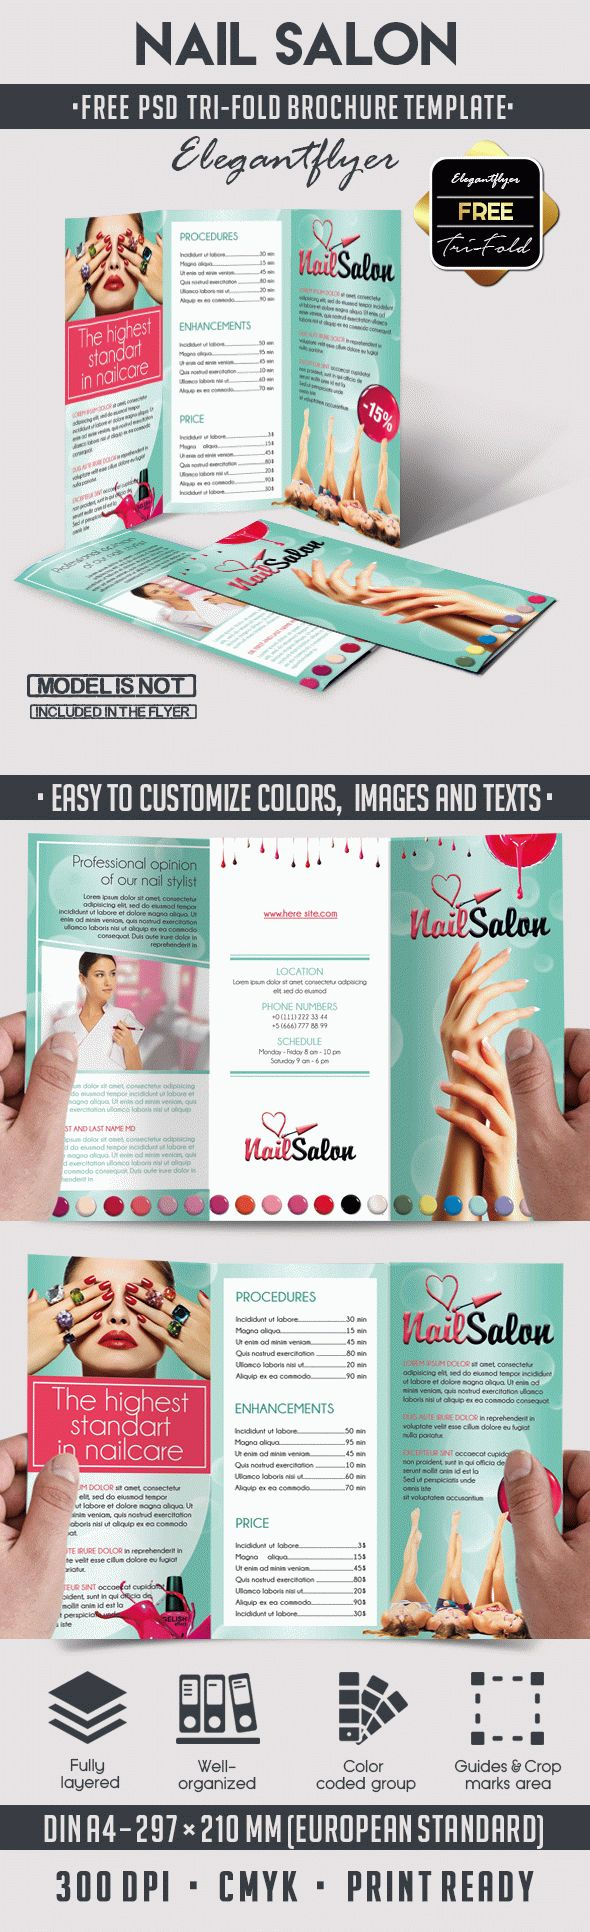 free template for tri fold brochure - nail free tri fold psd brochure template by elegantflyer